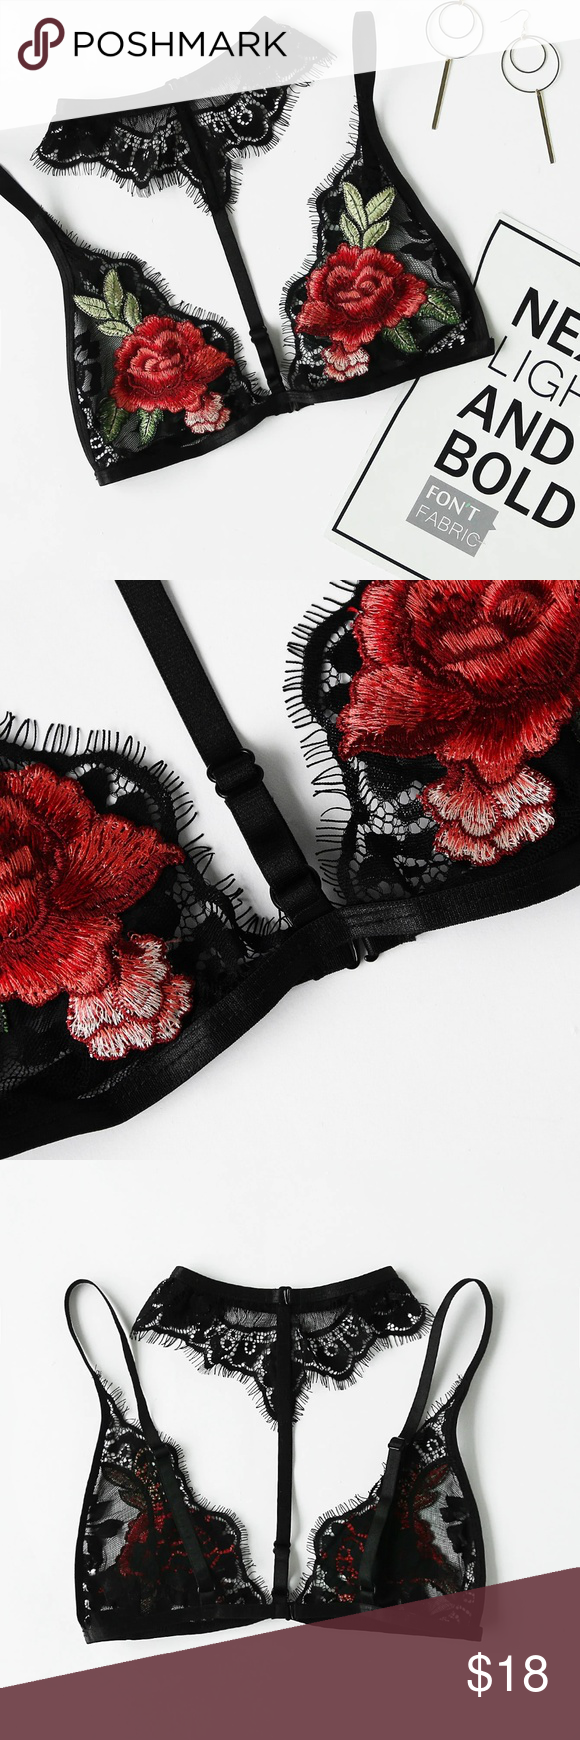 1338aae4398d5 EMBROIDERED ROSE PATCH LACE CHOKER BRALETTE Style  Sexy Type  Bras Details   Embroidery Details